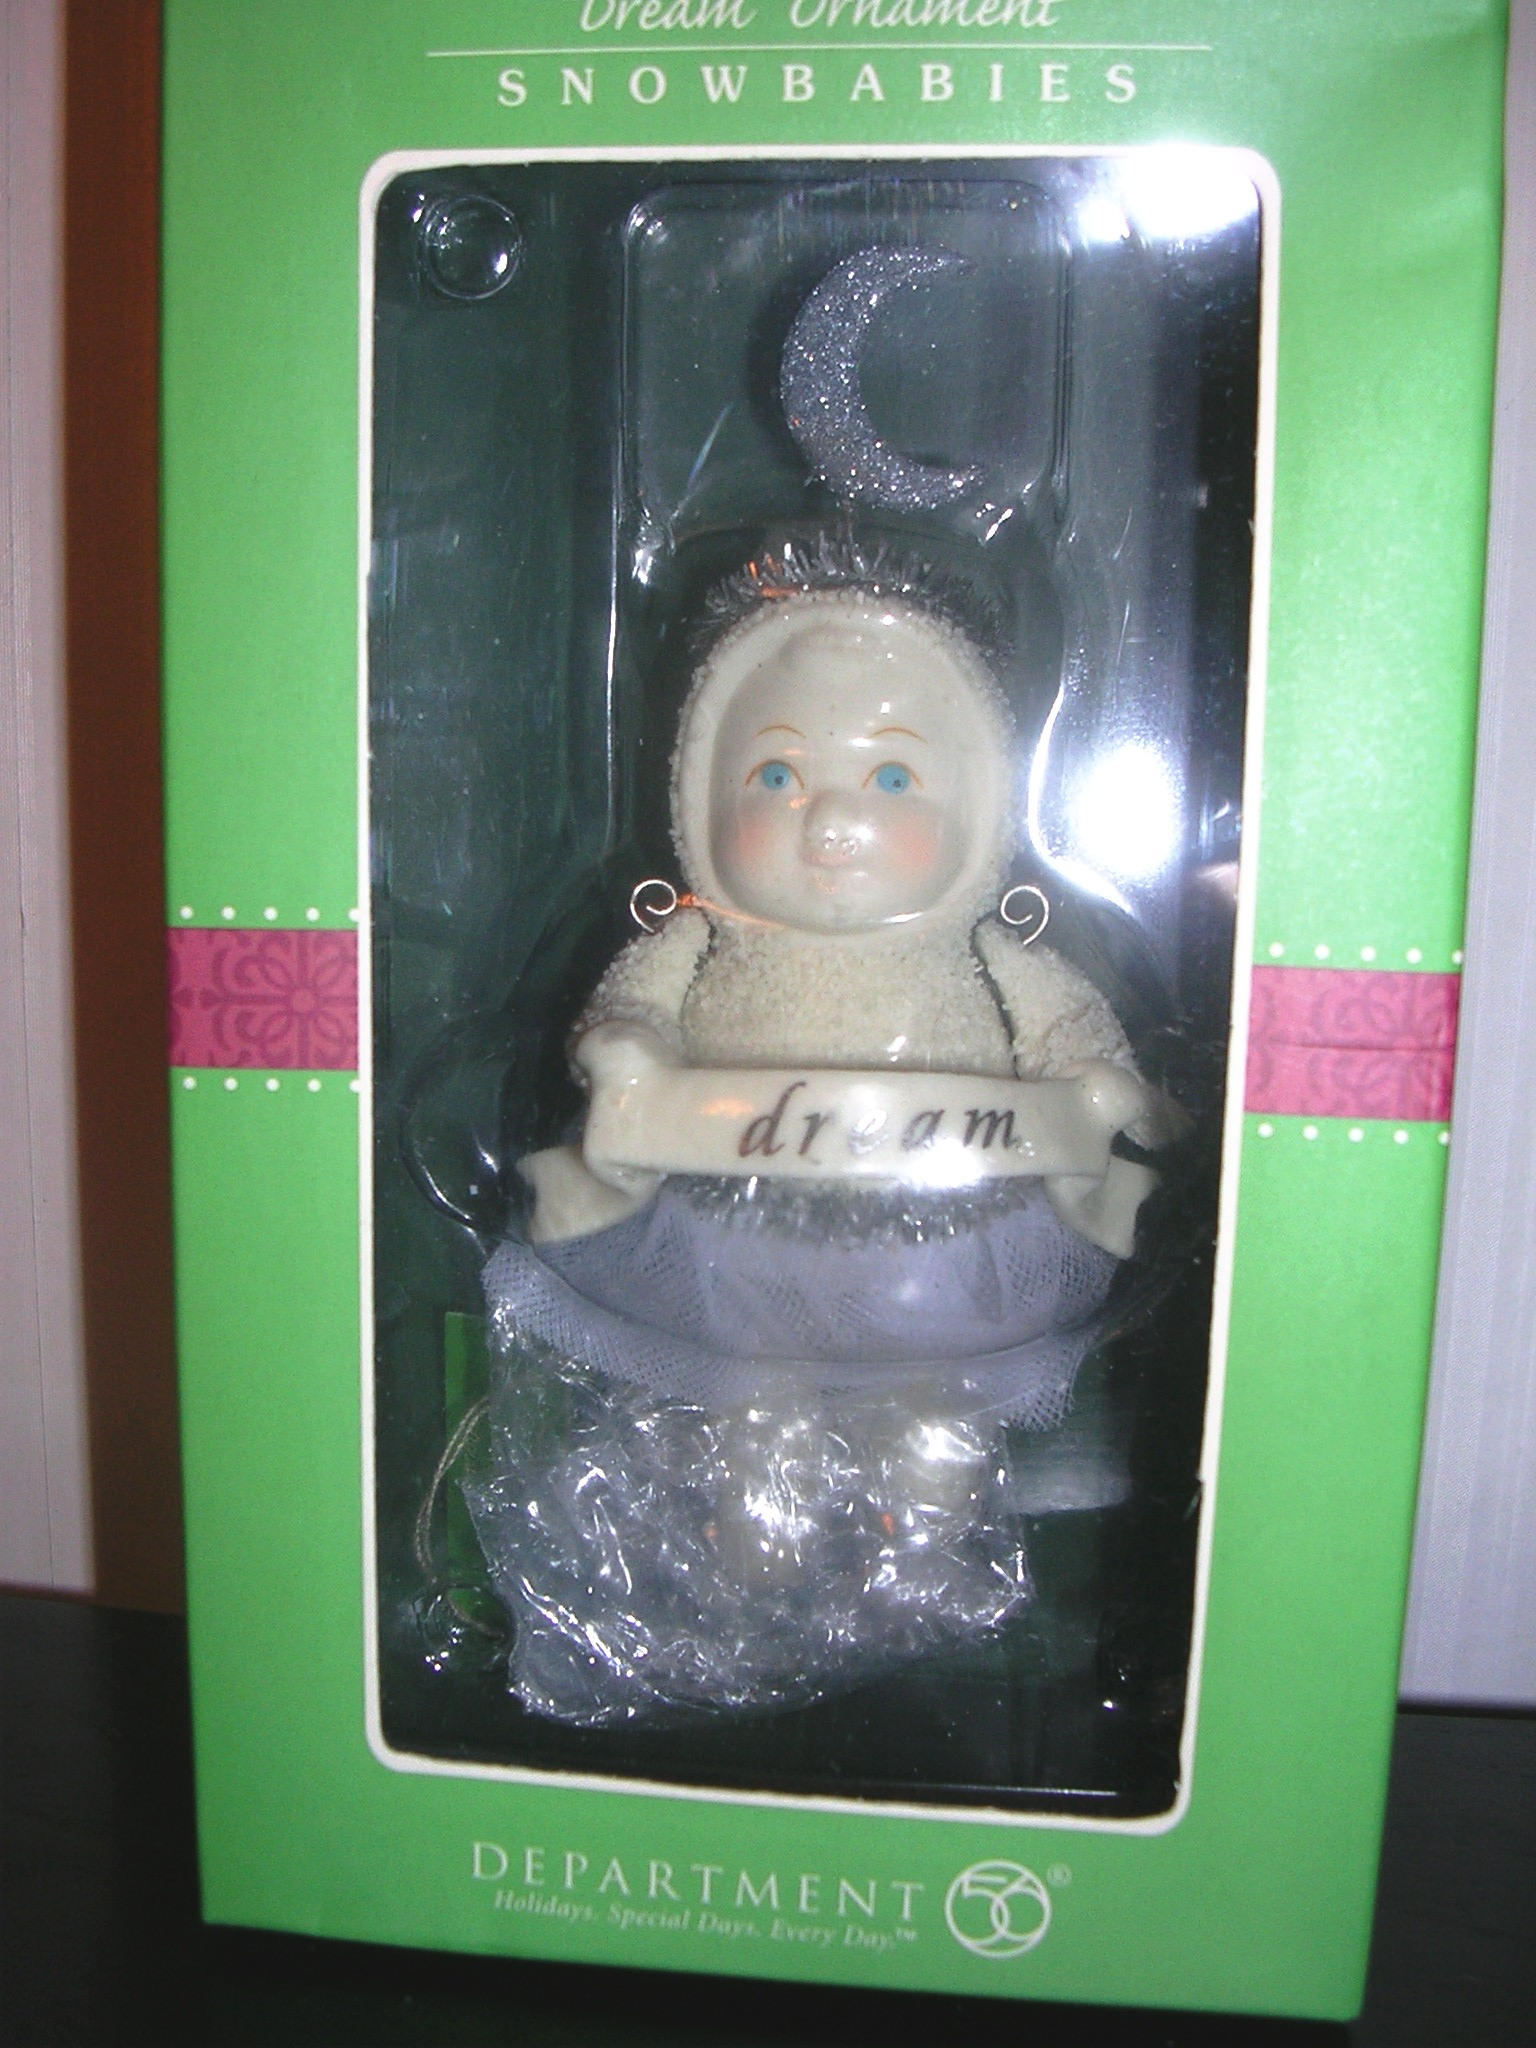 Snowbabies Dept 56 Dream Ornament